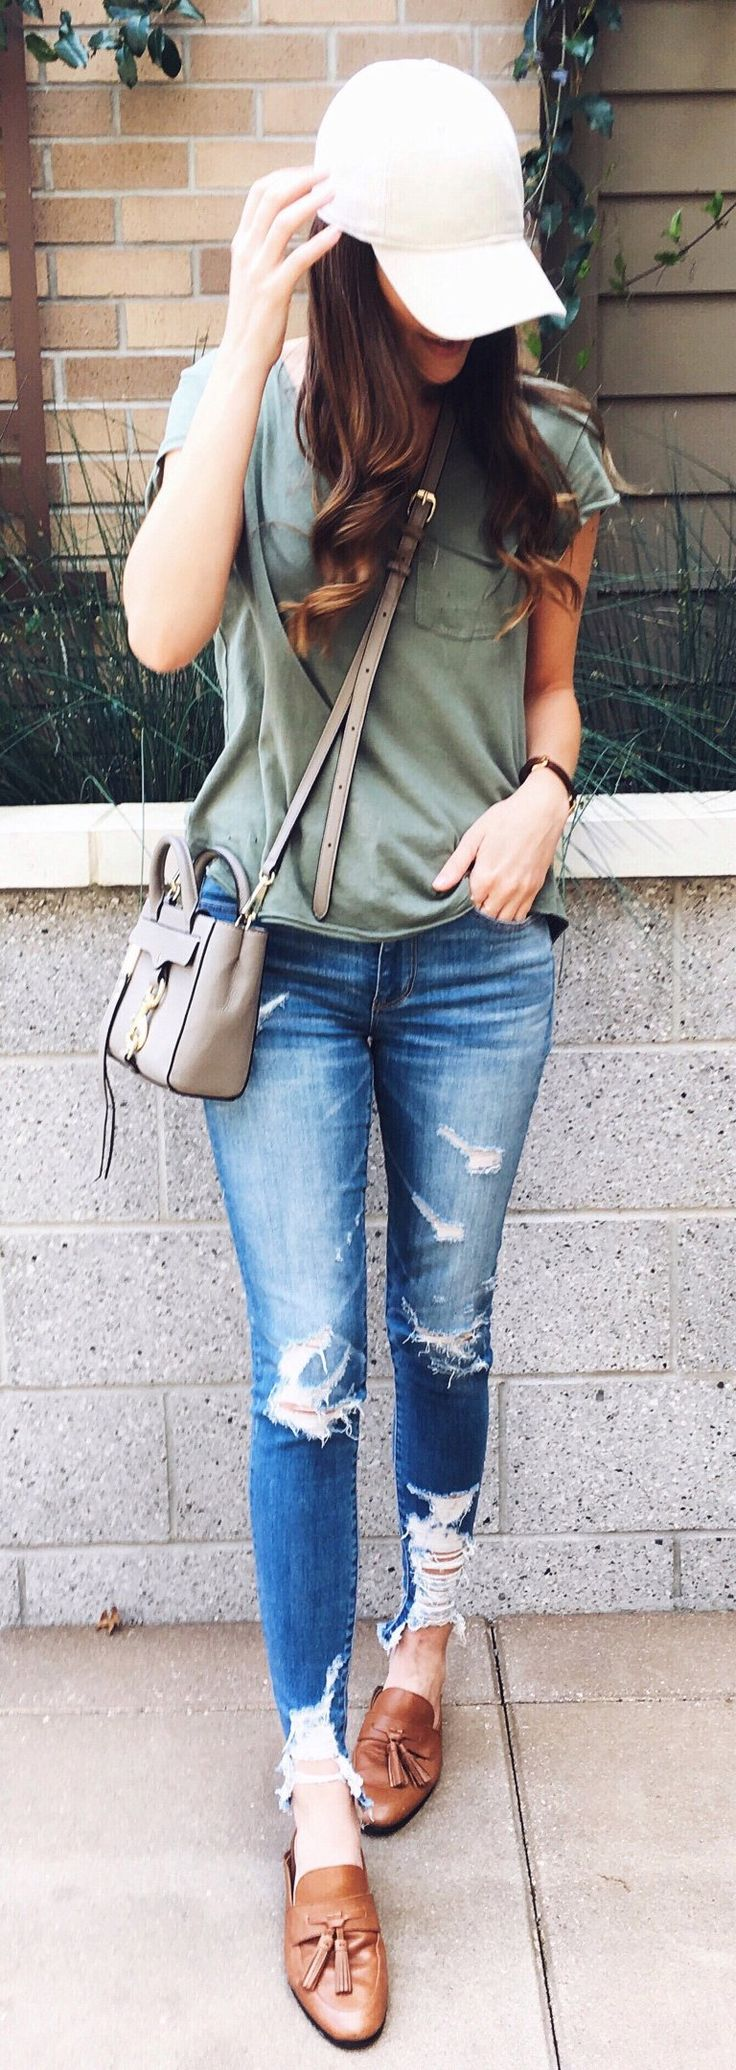 #spring #outfits  Sunday Style In My Comfiest Jeans And Distressed Tee + Always A Baseball Cap & Unwashed Hair.✌ // White Cap + Olive Tee + Ripped Skinny Jeans